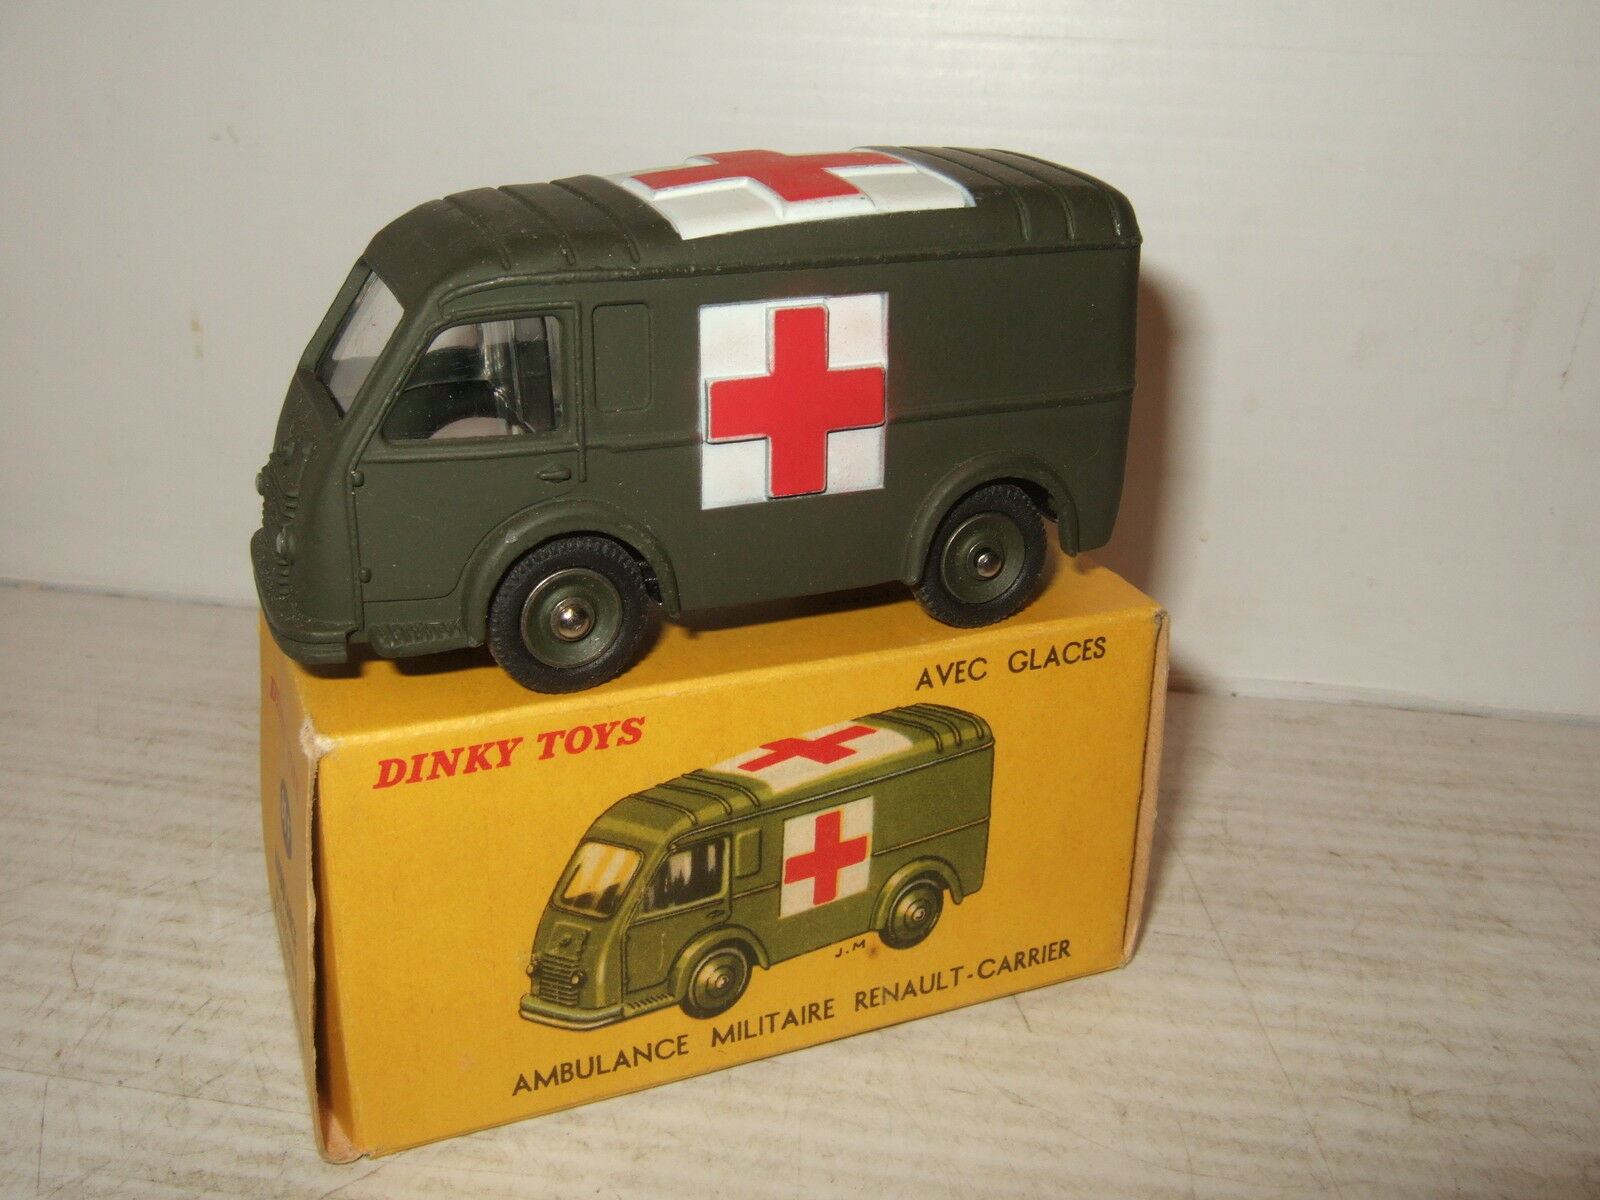 Vintage Rare French Dinky 80F Renault-Carrier Military Ambulance & original Box